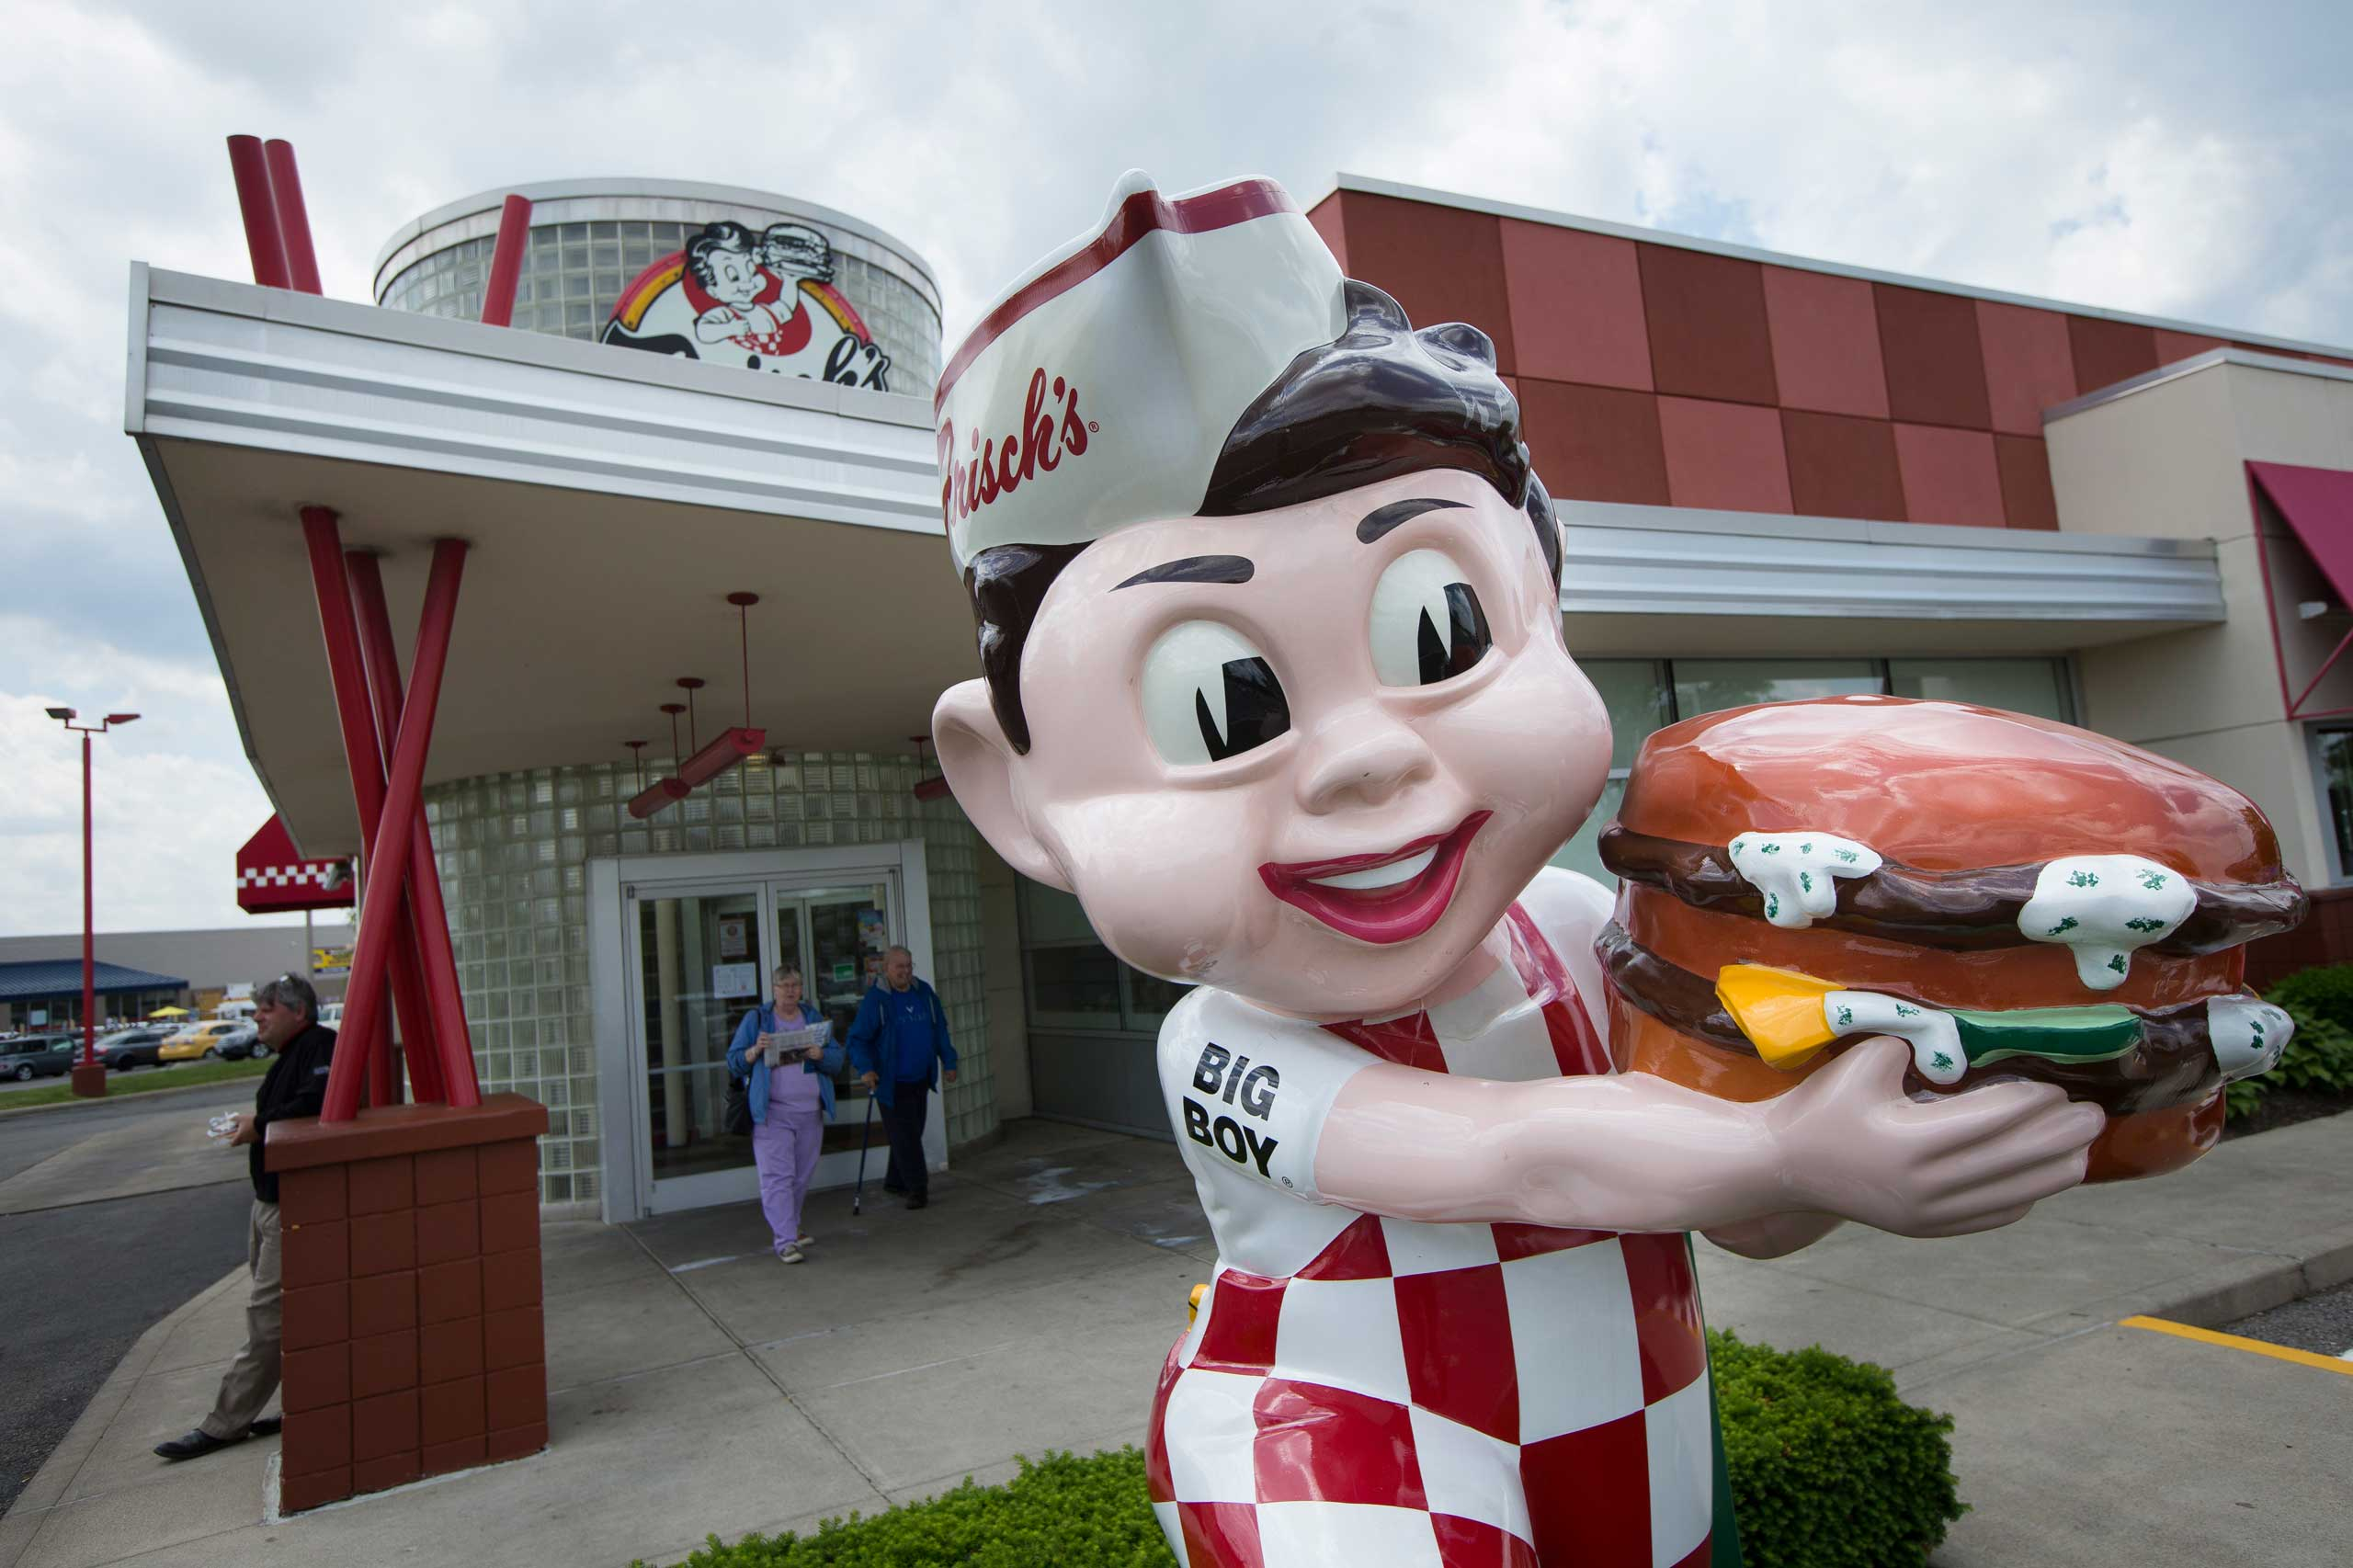 A  Bog Boy  statue stands outside a Frisch's Big Boy restaurant, May 22, 2015, in Columbus, Ohio.